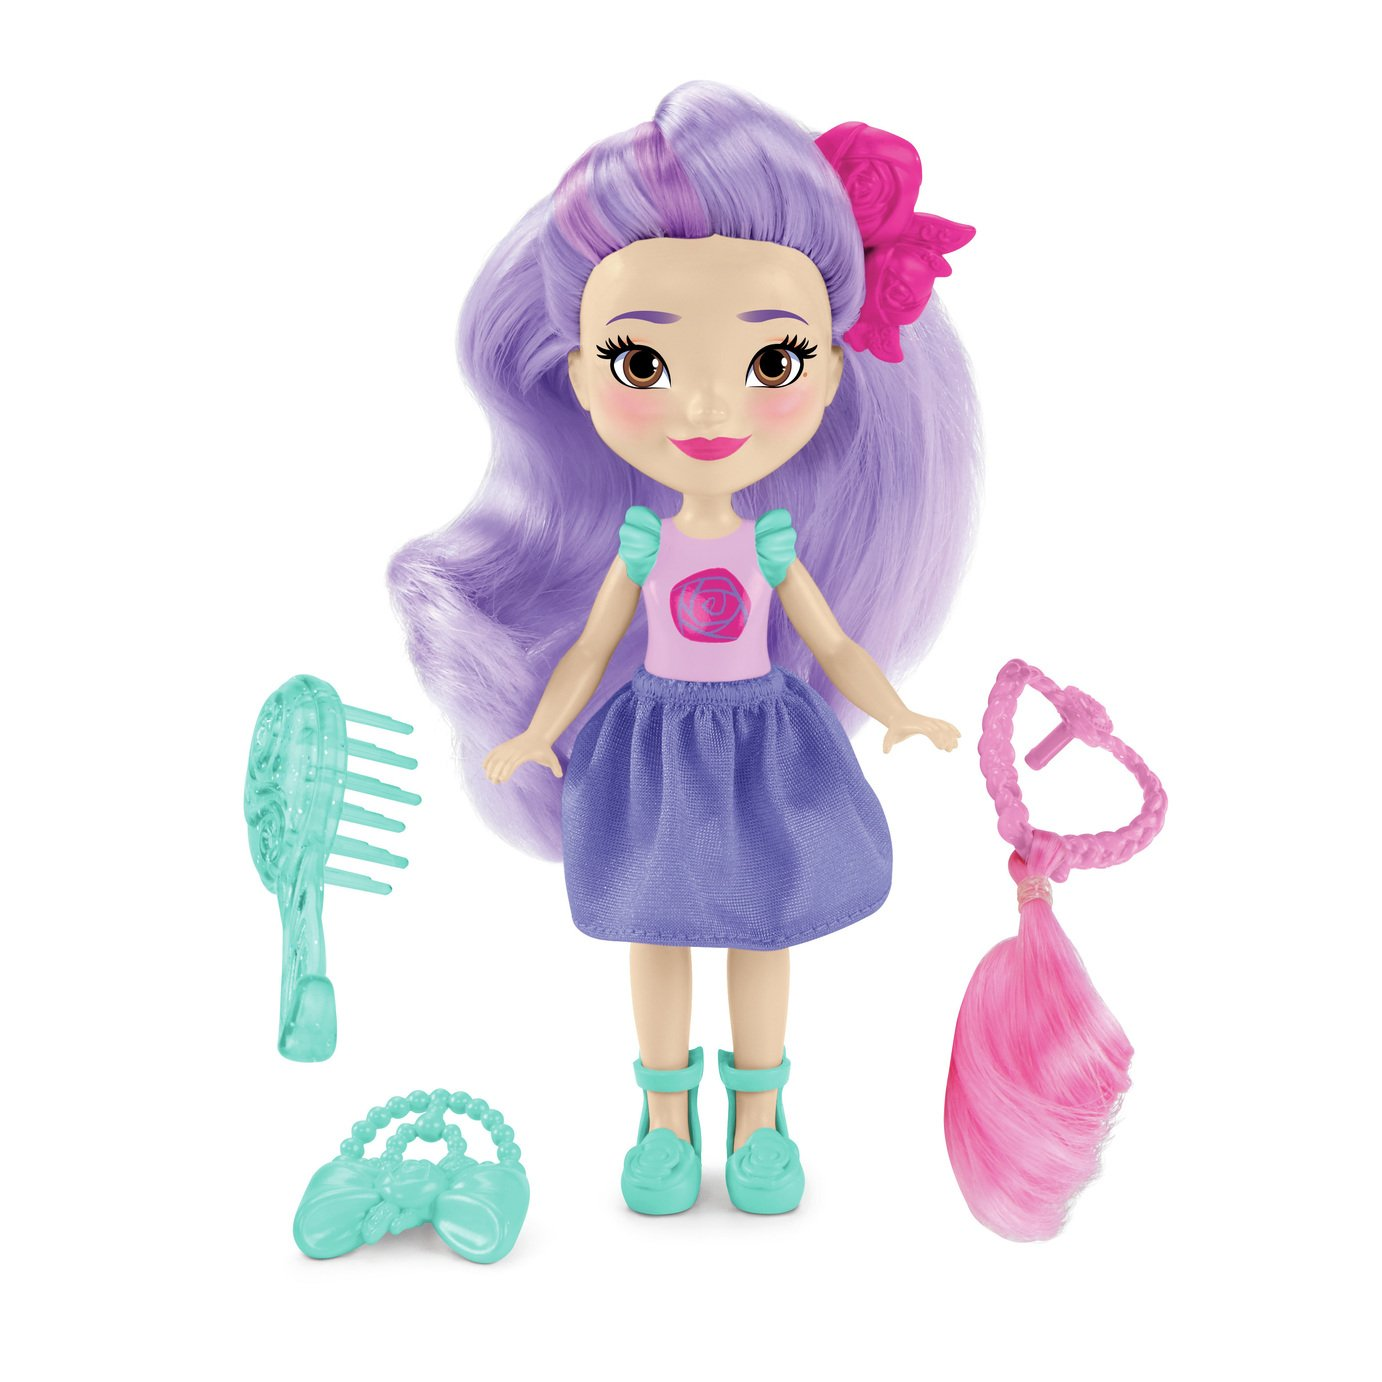 Nickelodeon Sunny Day Pop-In Style Blair Doll